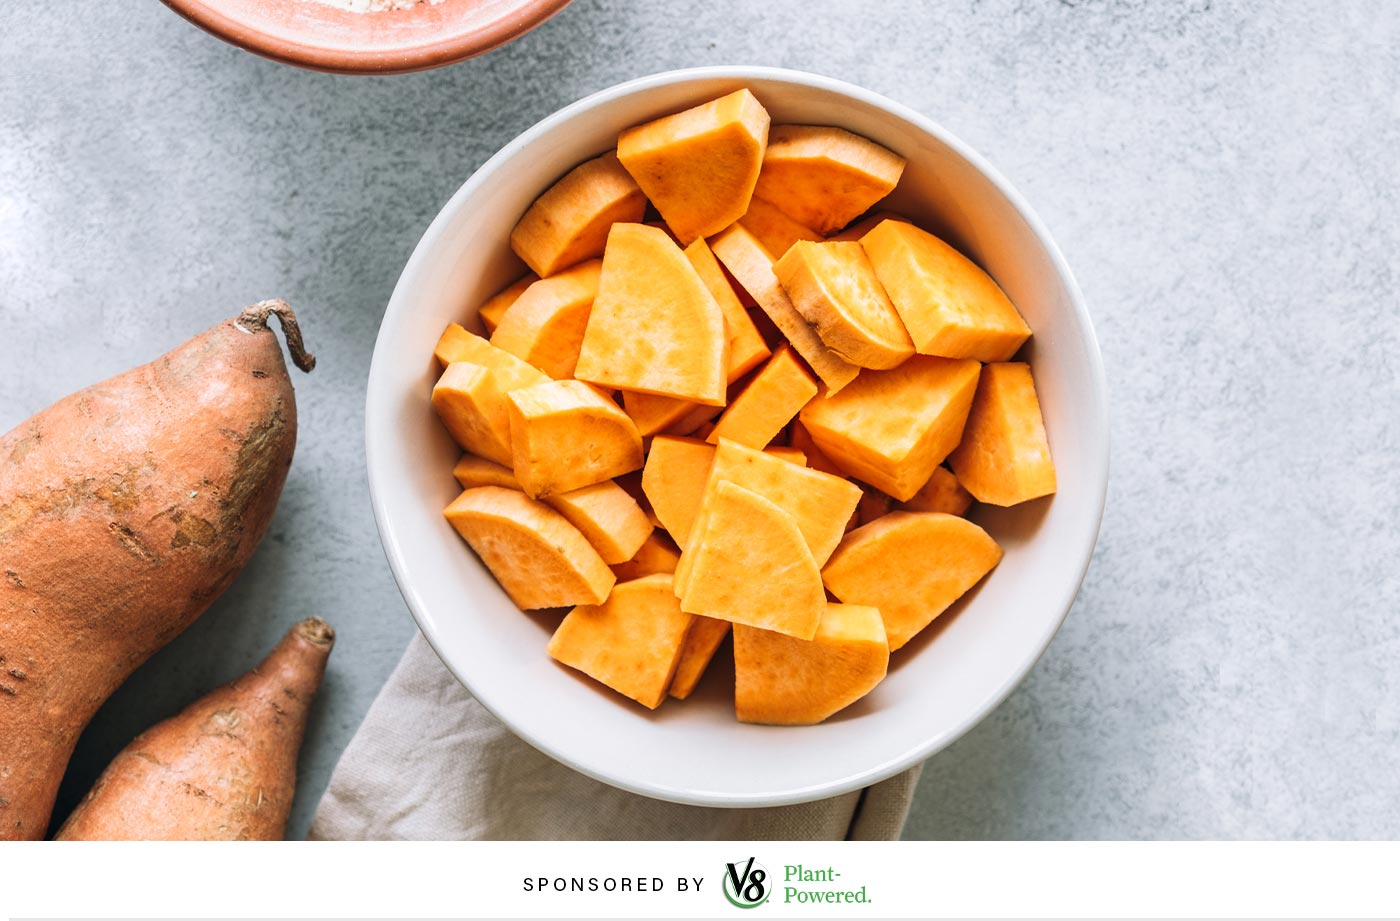 Mind Blown: Sweet Potatoes are a Source of Electrolytes, and You Can Get Them in This Drink